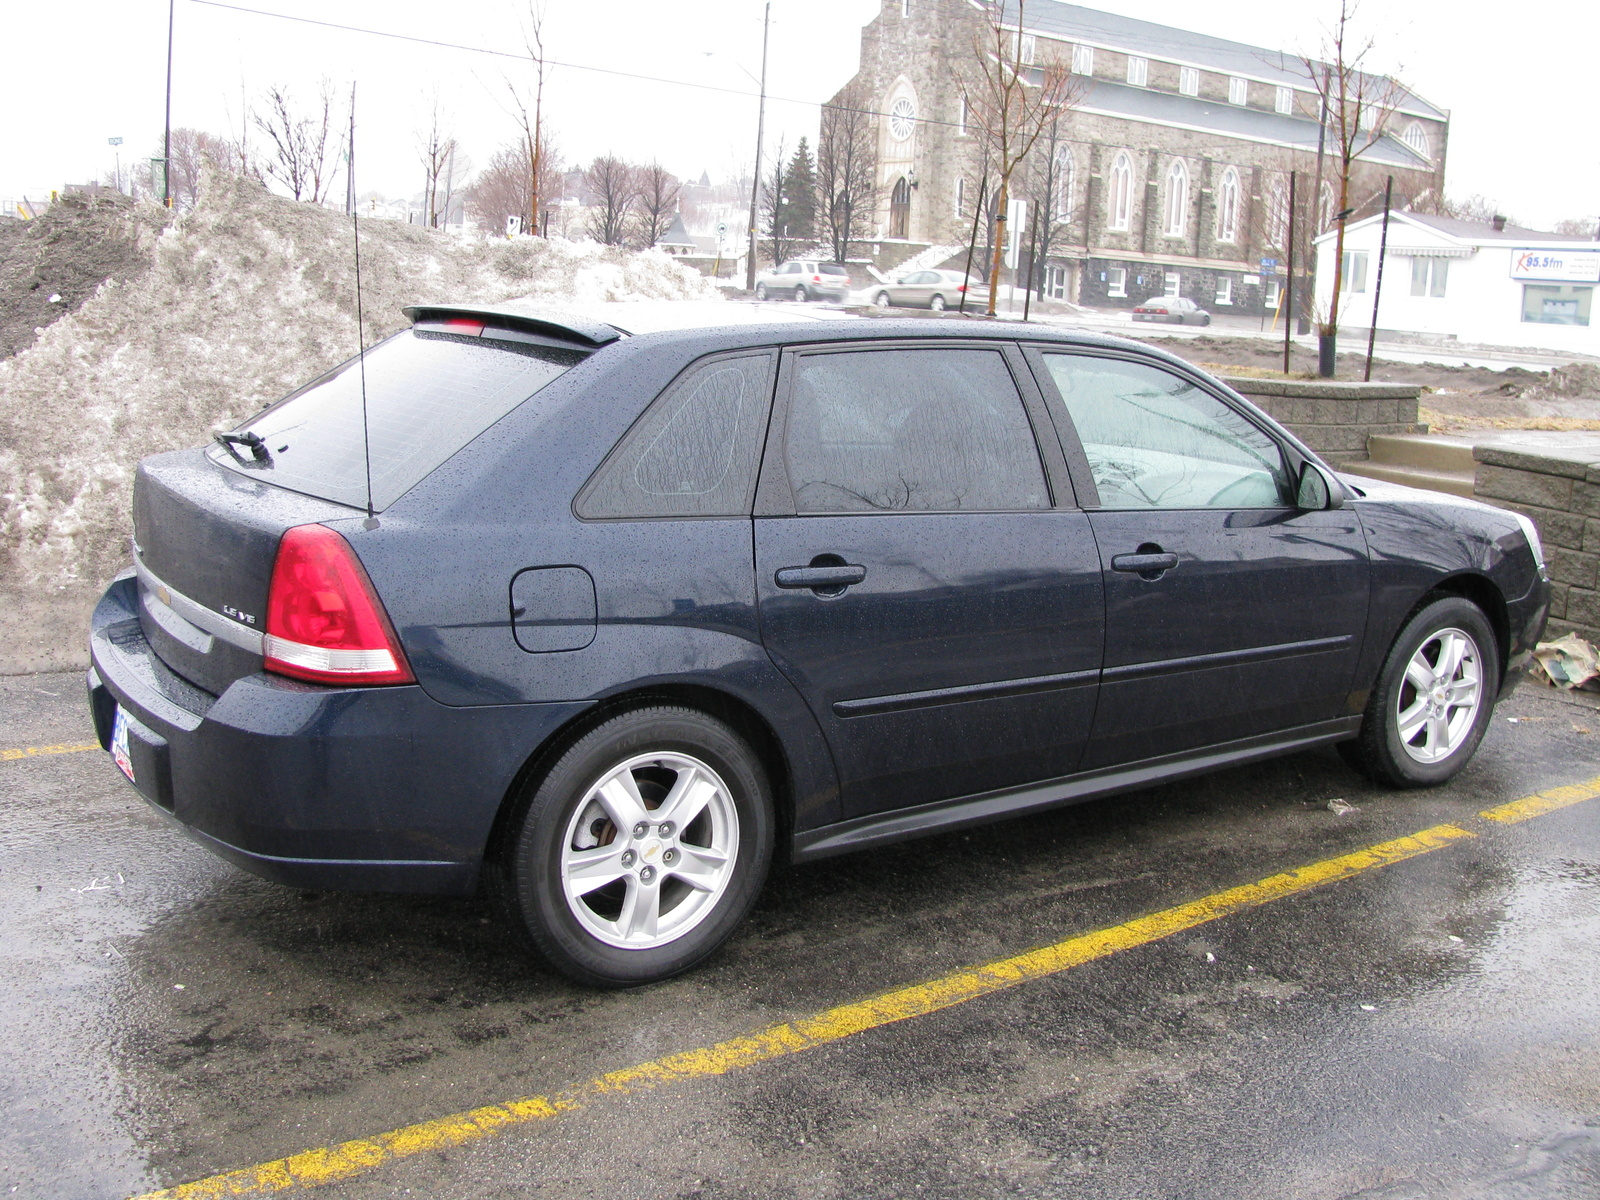 2005 chevrolet malibu maxx pictures cargurus. Cars Review. Best American Auto & Cars Review